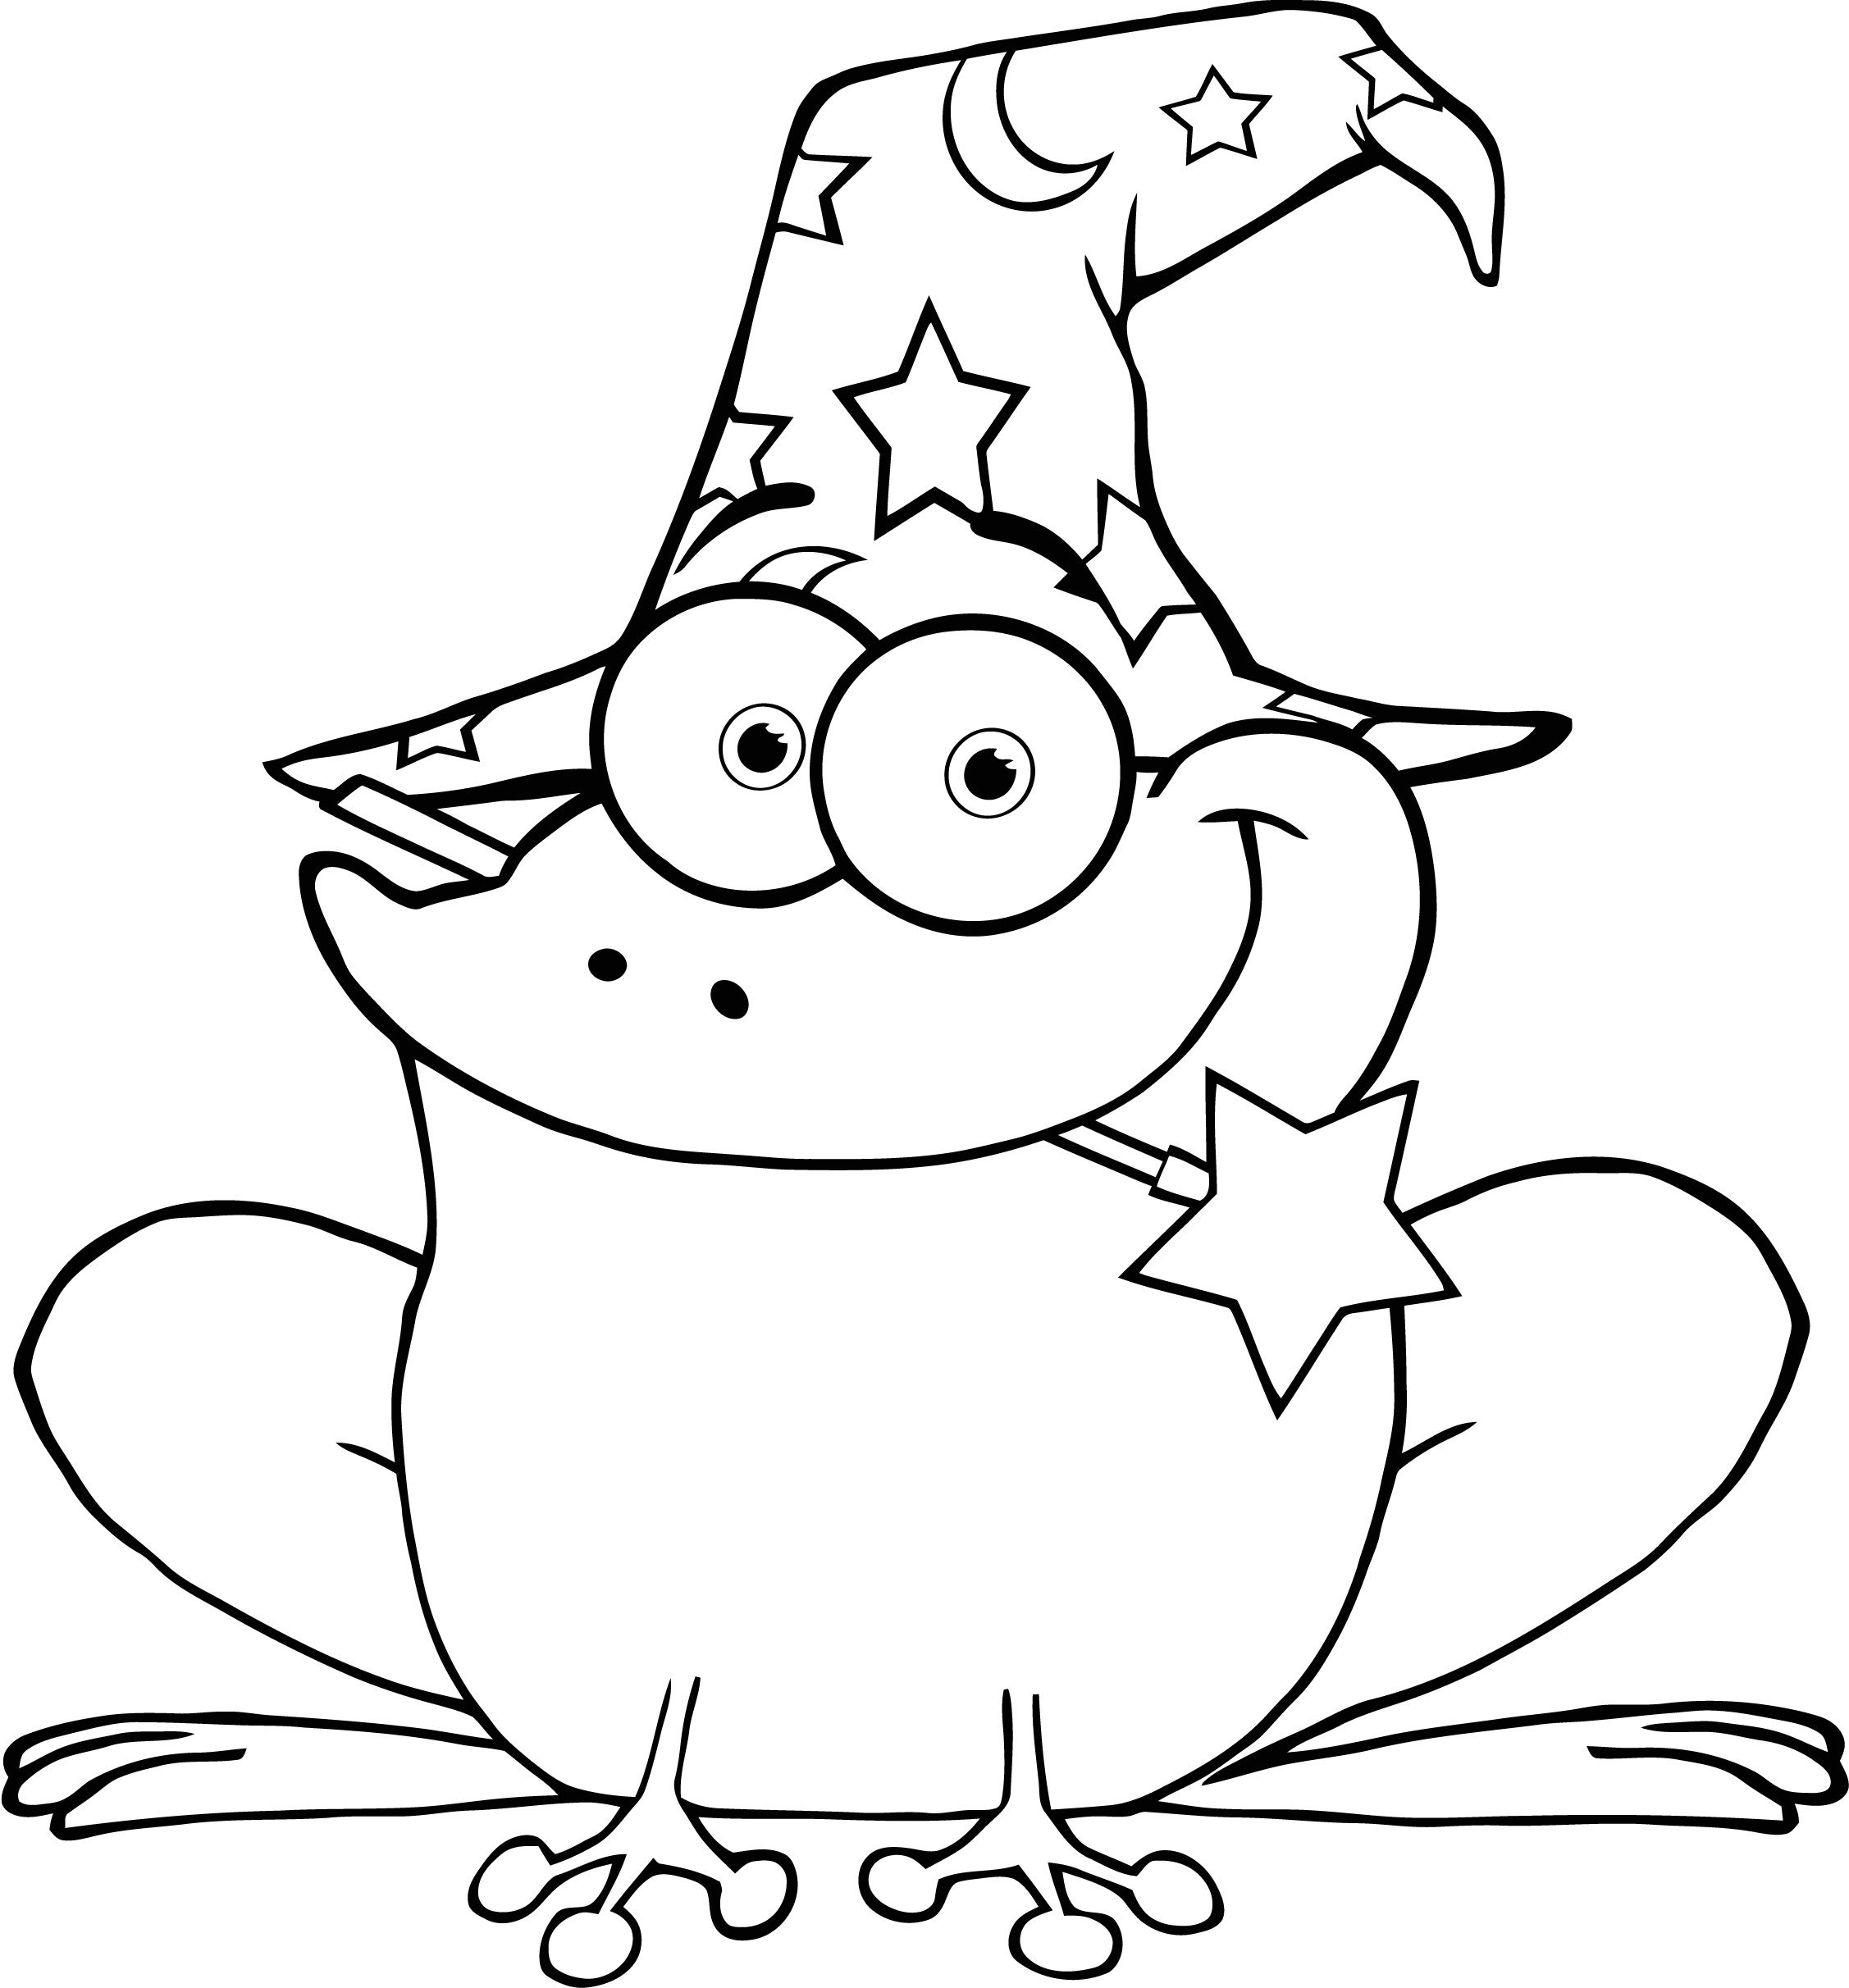 Cute Frog Coloring Pages For Kids With Images